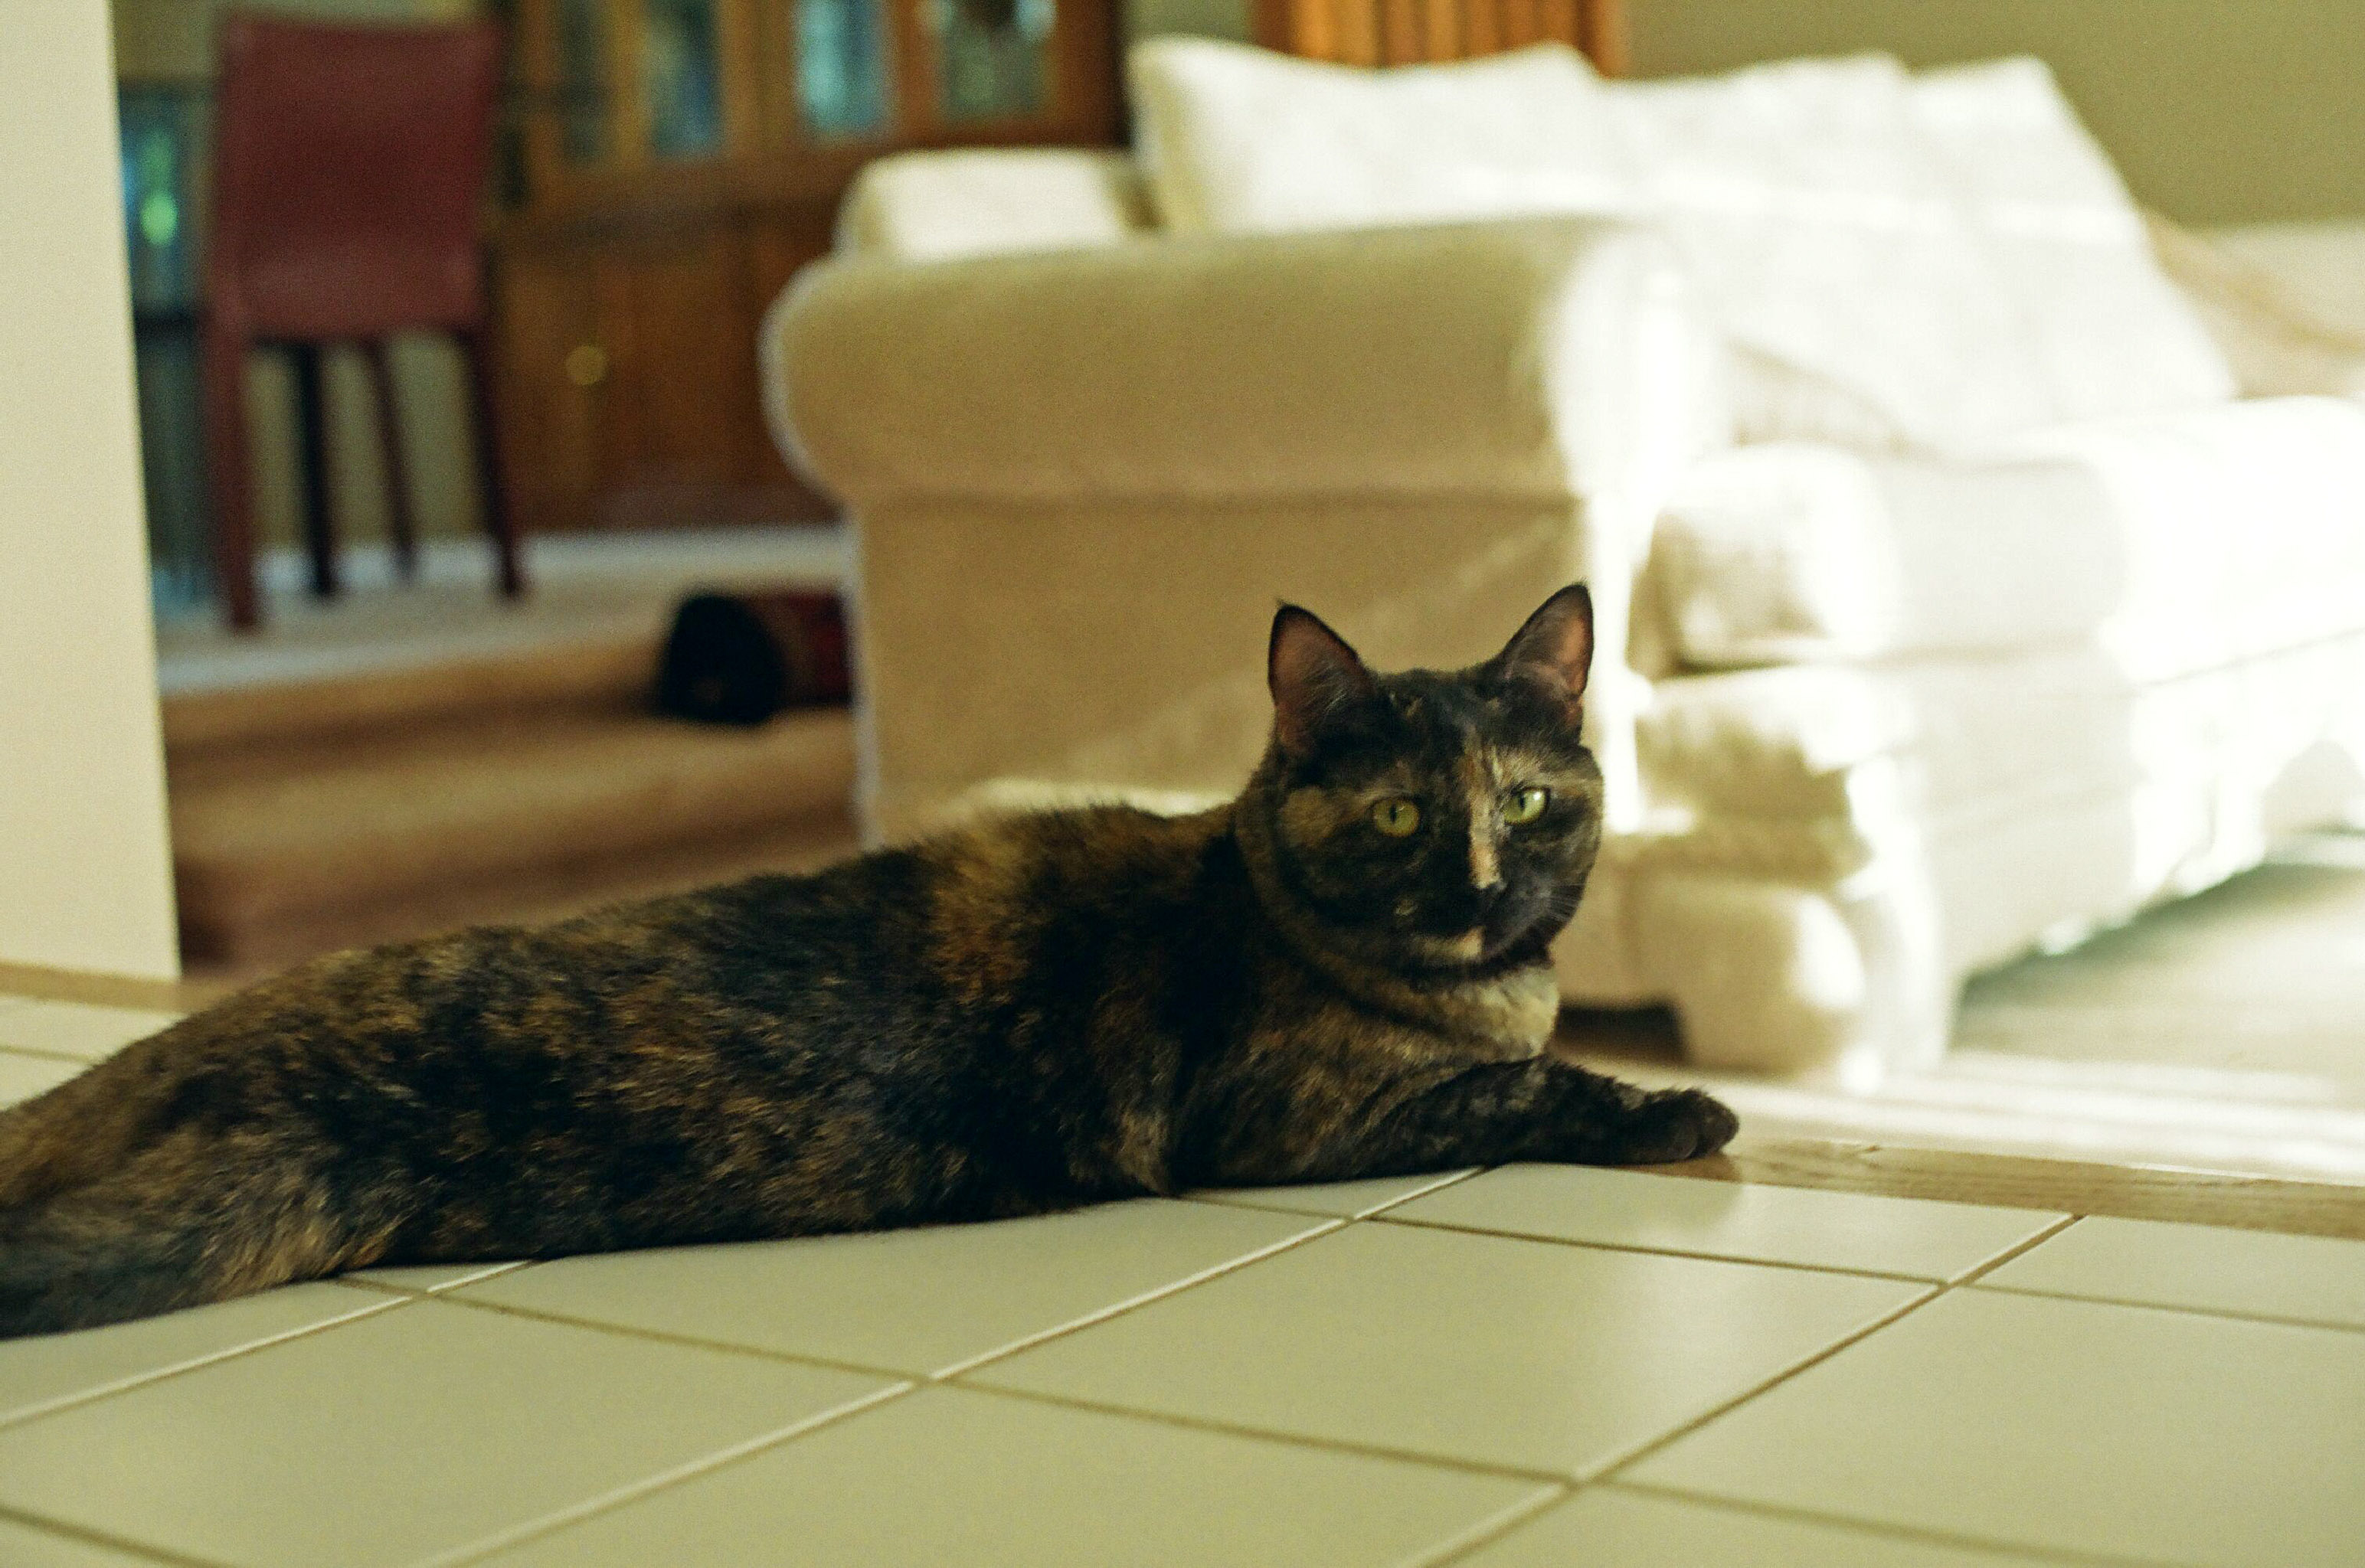 Cat stretched on the floor photo